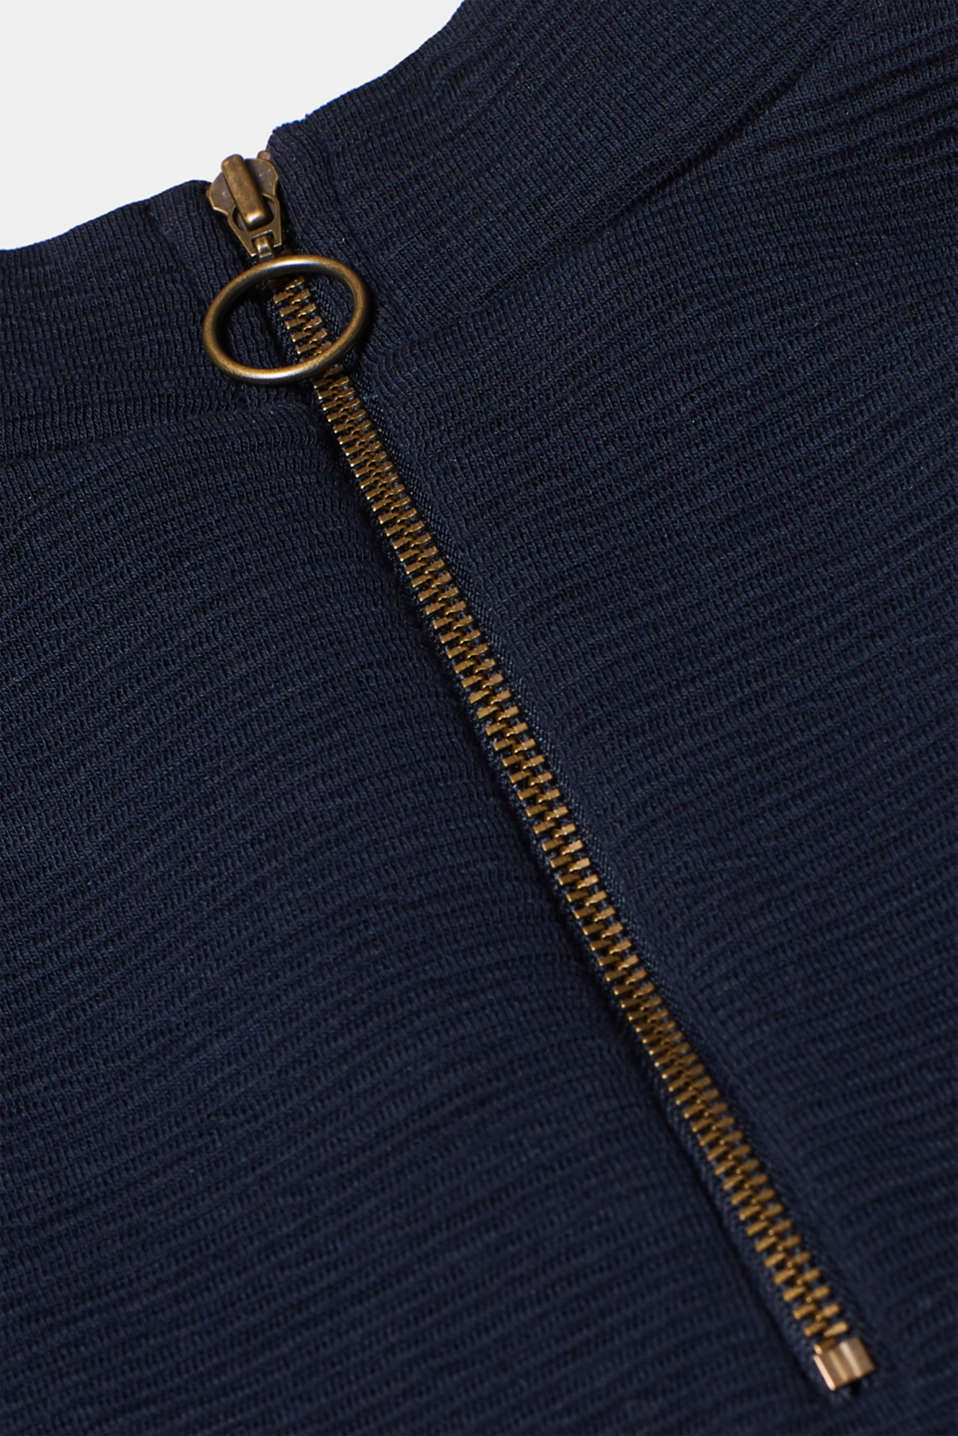 Stretch long sleeve top with velvet details, NAVY, detail image number 4